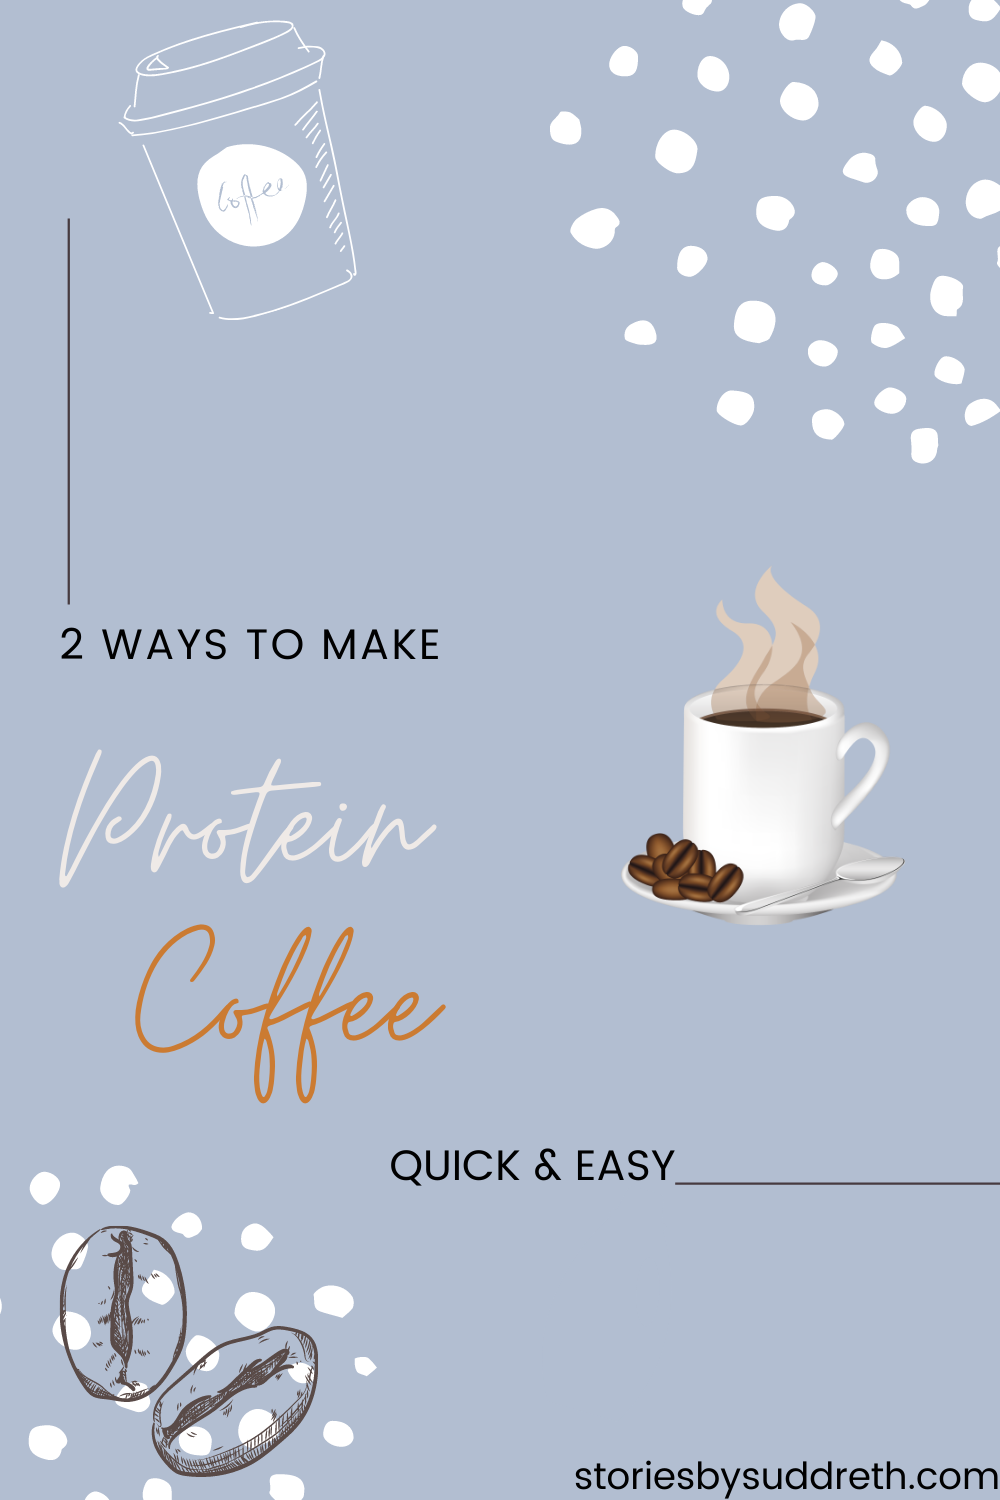 2 Quick & Easy Ways to Make Protein Coffee